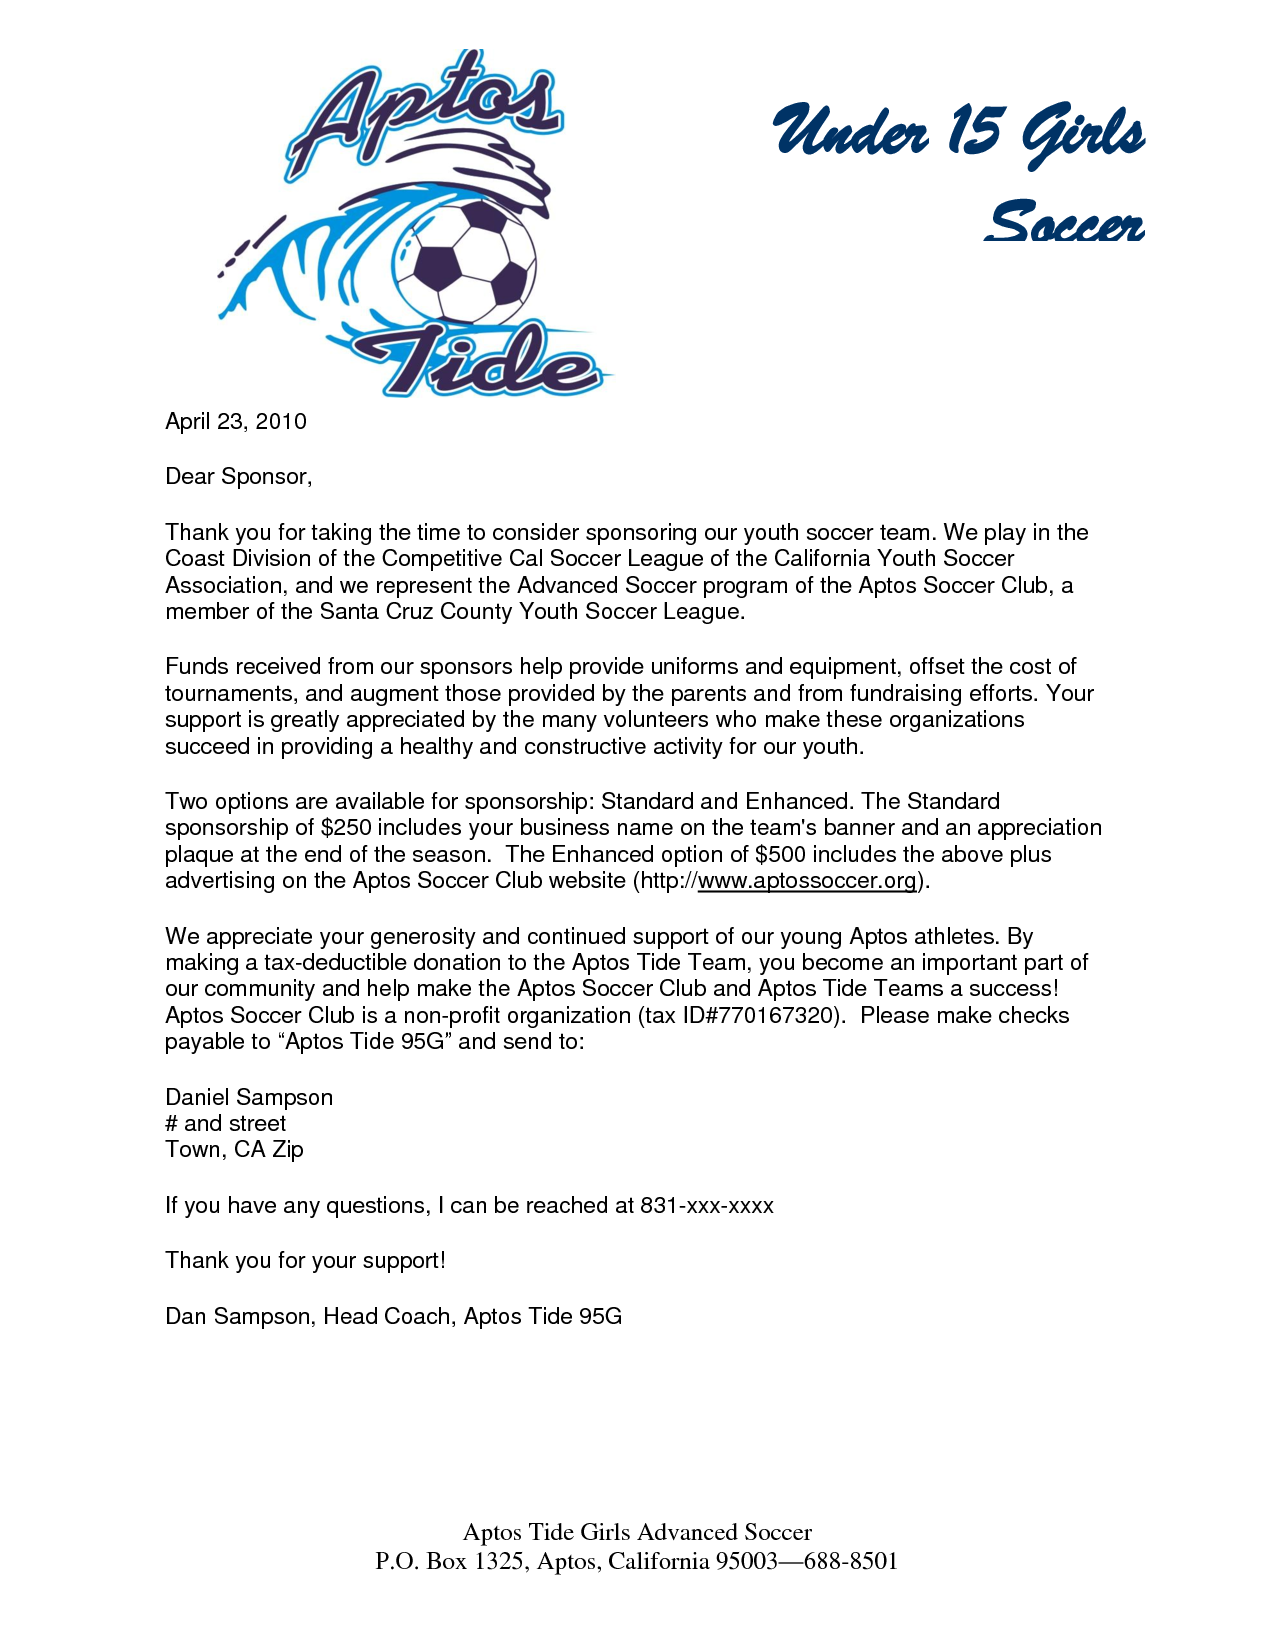 Parent thank you letter from youth athletes sponsorship for Sports team sponsorship proposal template